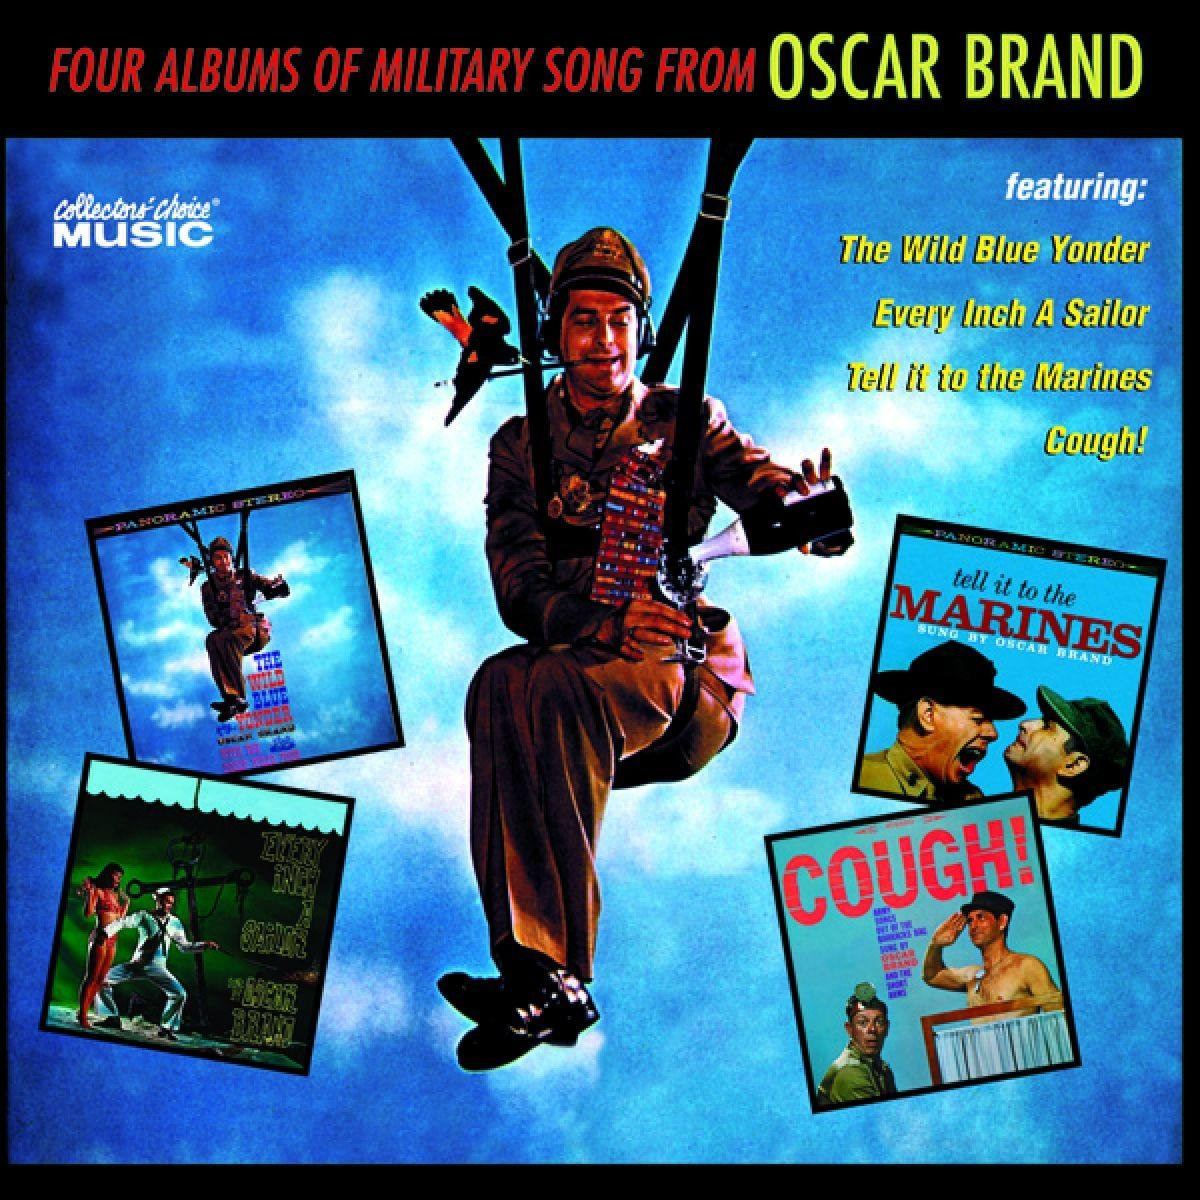 Four Albums of Military Song From Oscar Brand by Collector's Choice